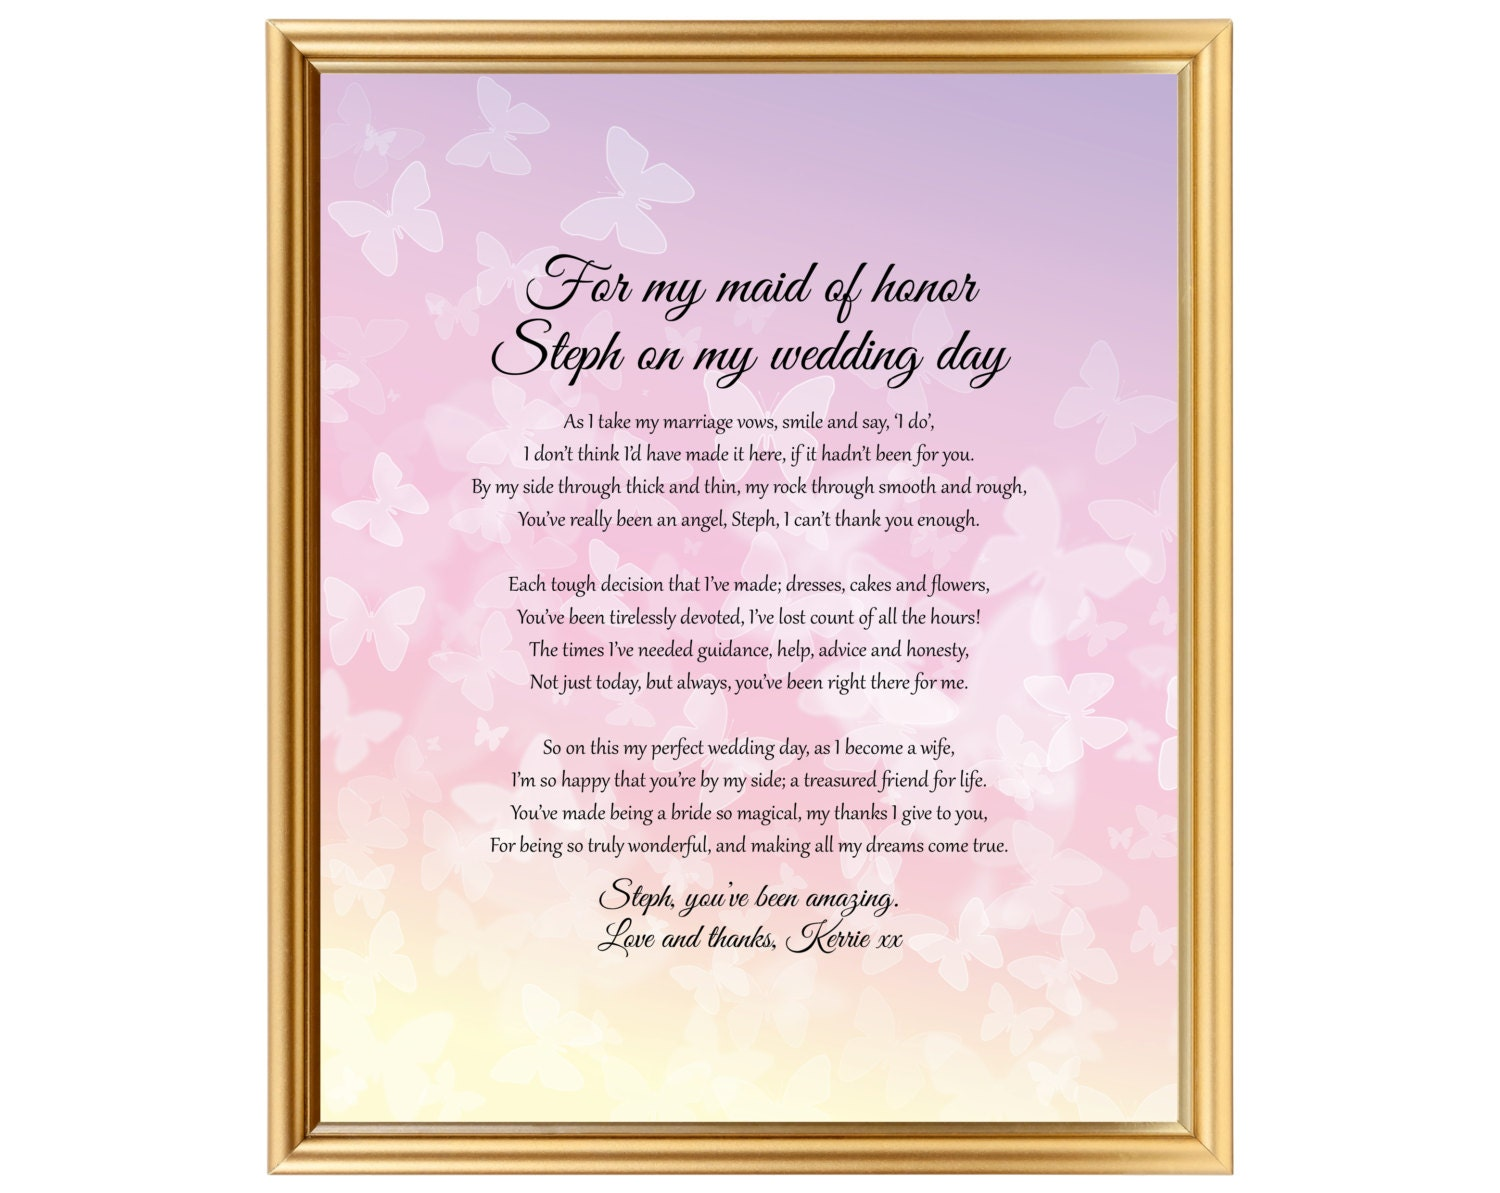 Maid of Honor keepsake Bride gift for her best friend On